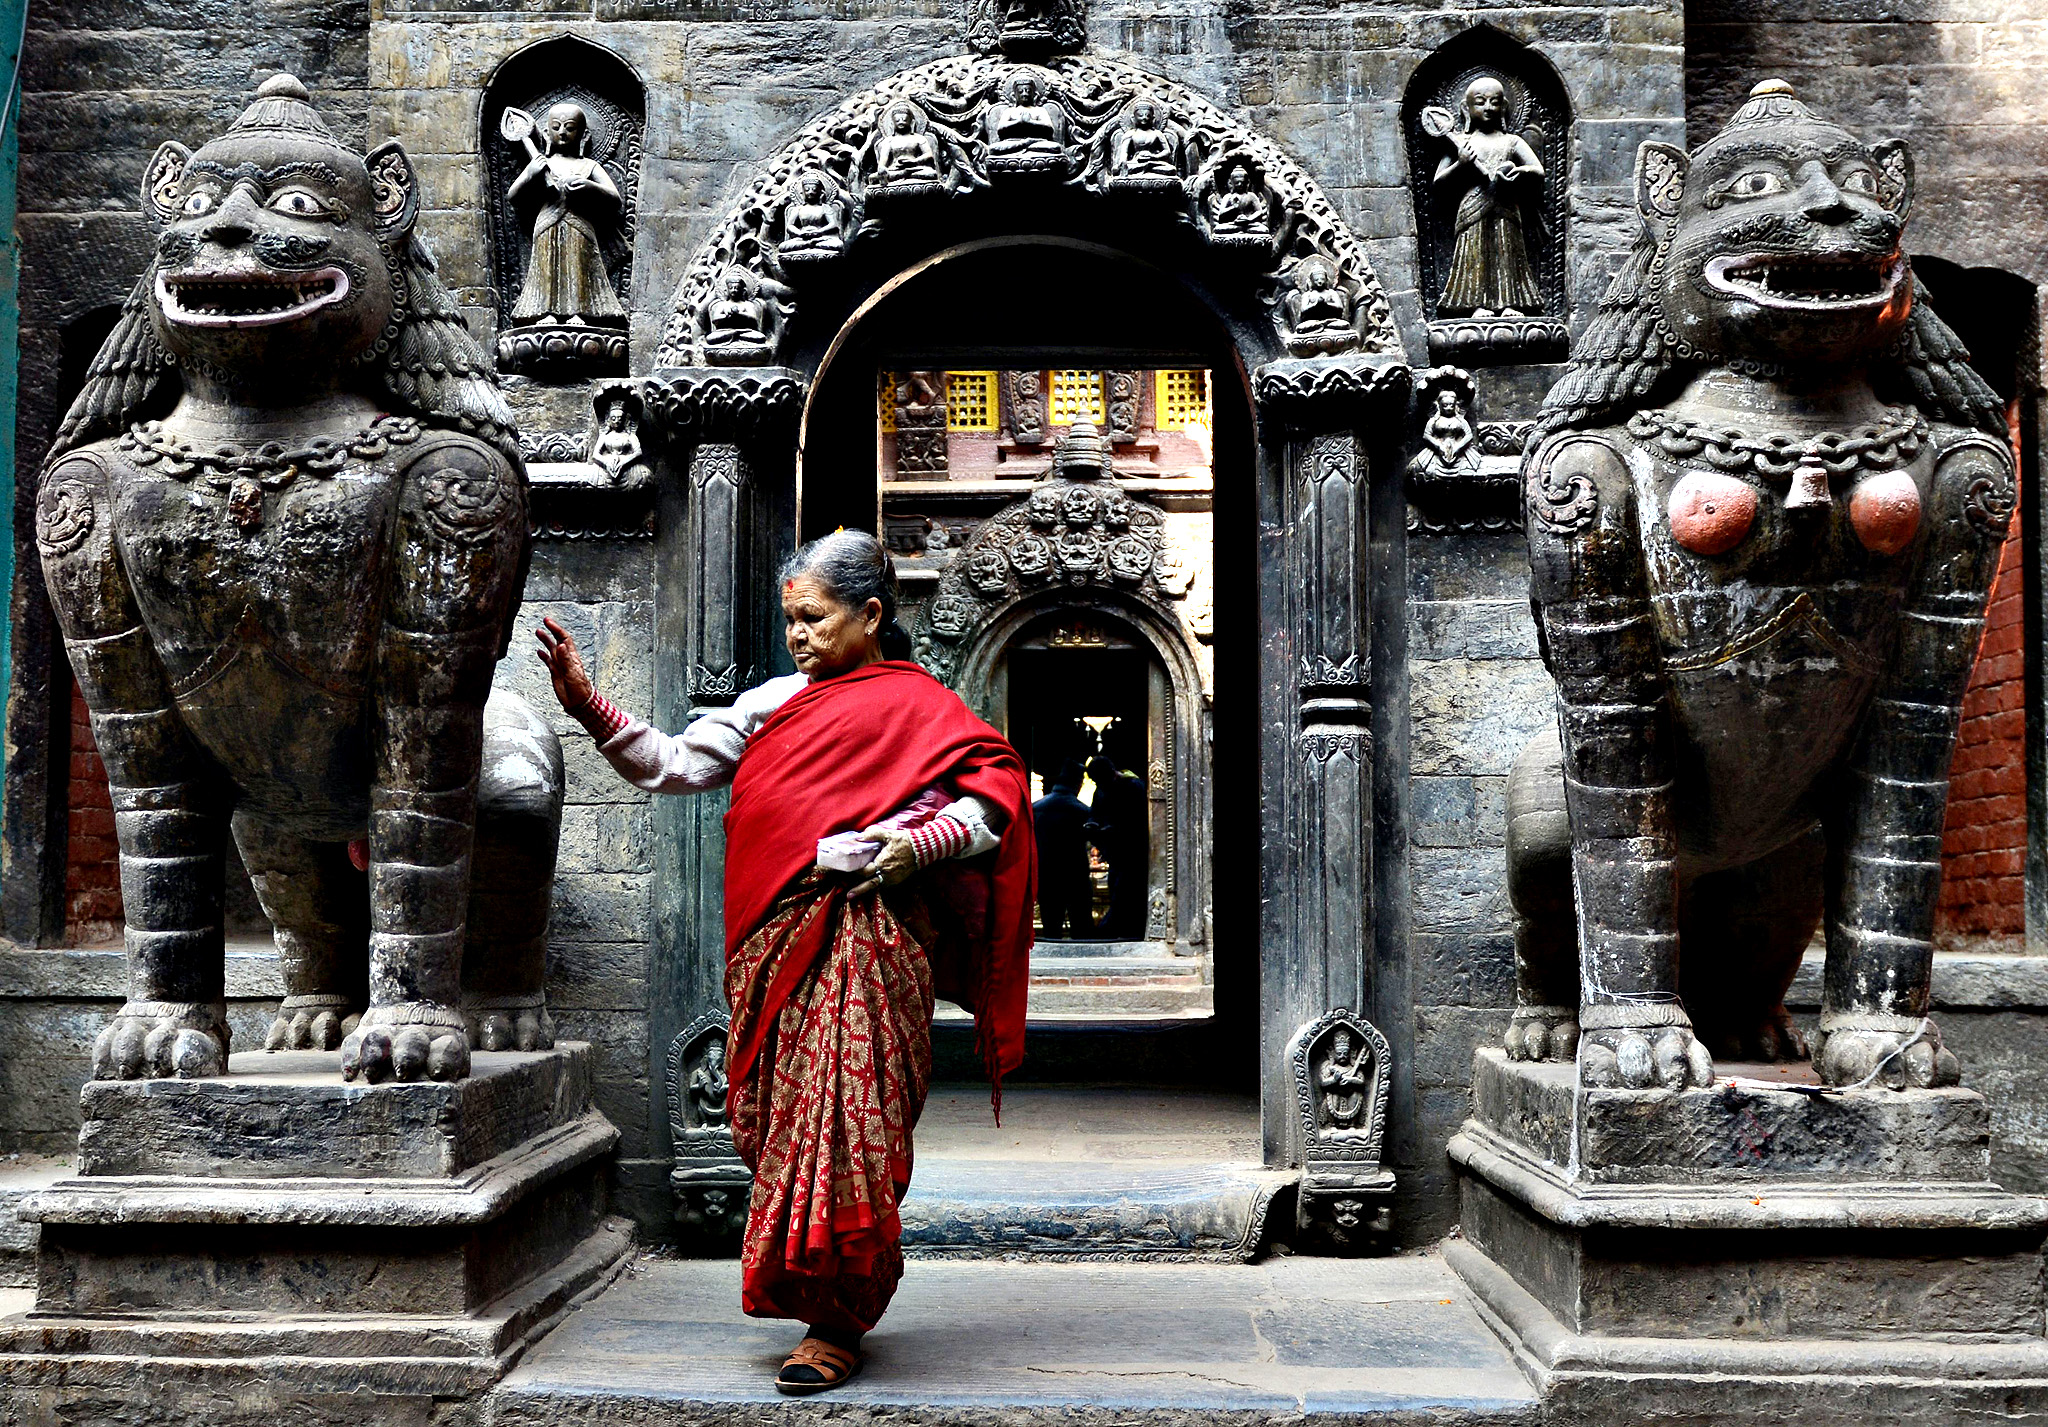 A Nepalese Buddhist devotee leaves after offering prayers at the Golden Temple near Patan Durbar square in Lalitpur, about five kilometers south-east of Kathmandu on November 3, 2014. The Golden Temple was founded during the 12th Century near Patan Durbar Square, a UNESCO World Heritage site, famous for fine ancient art, making of metallic and stone carving statues.